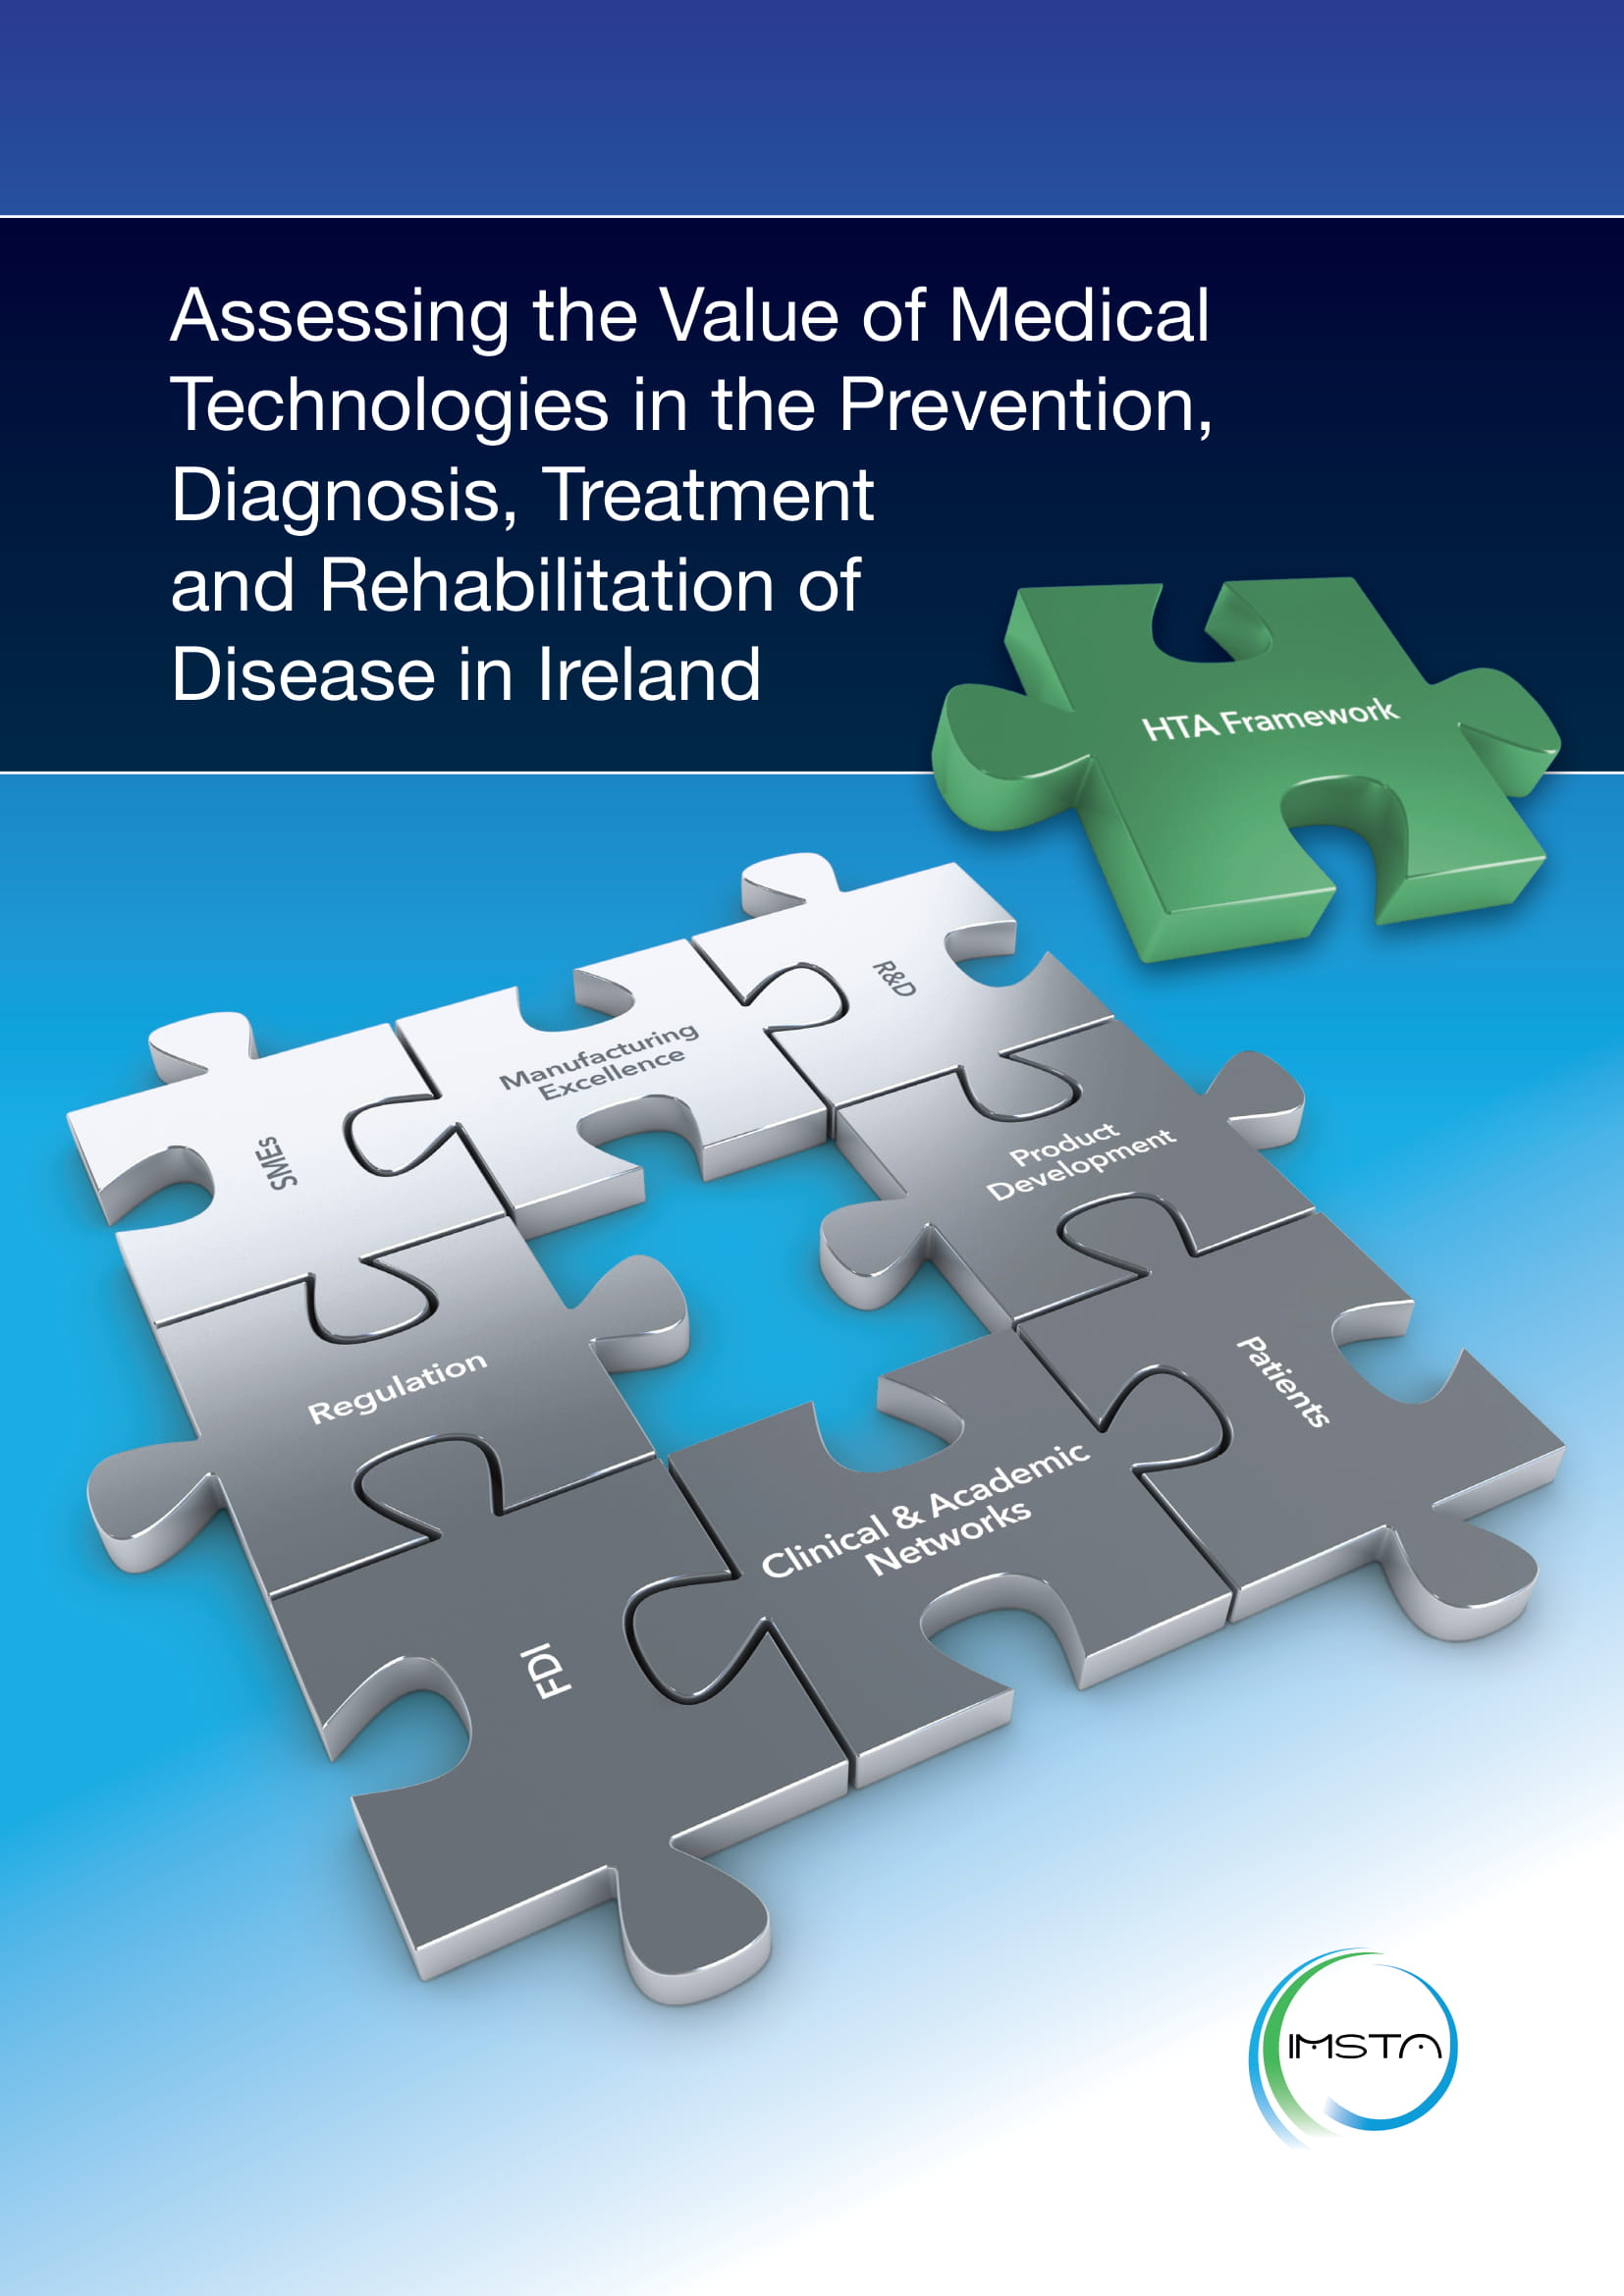 Assessing the Value of Medical Technologies